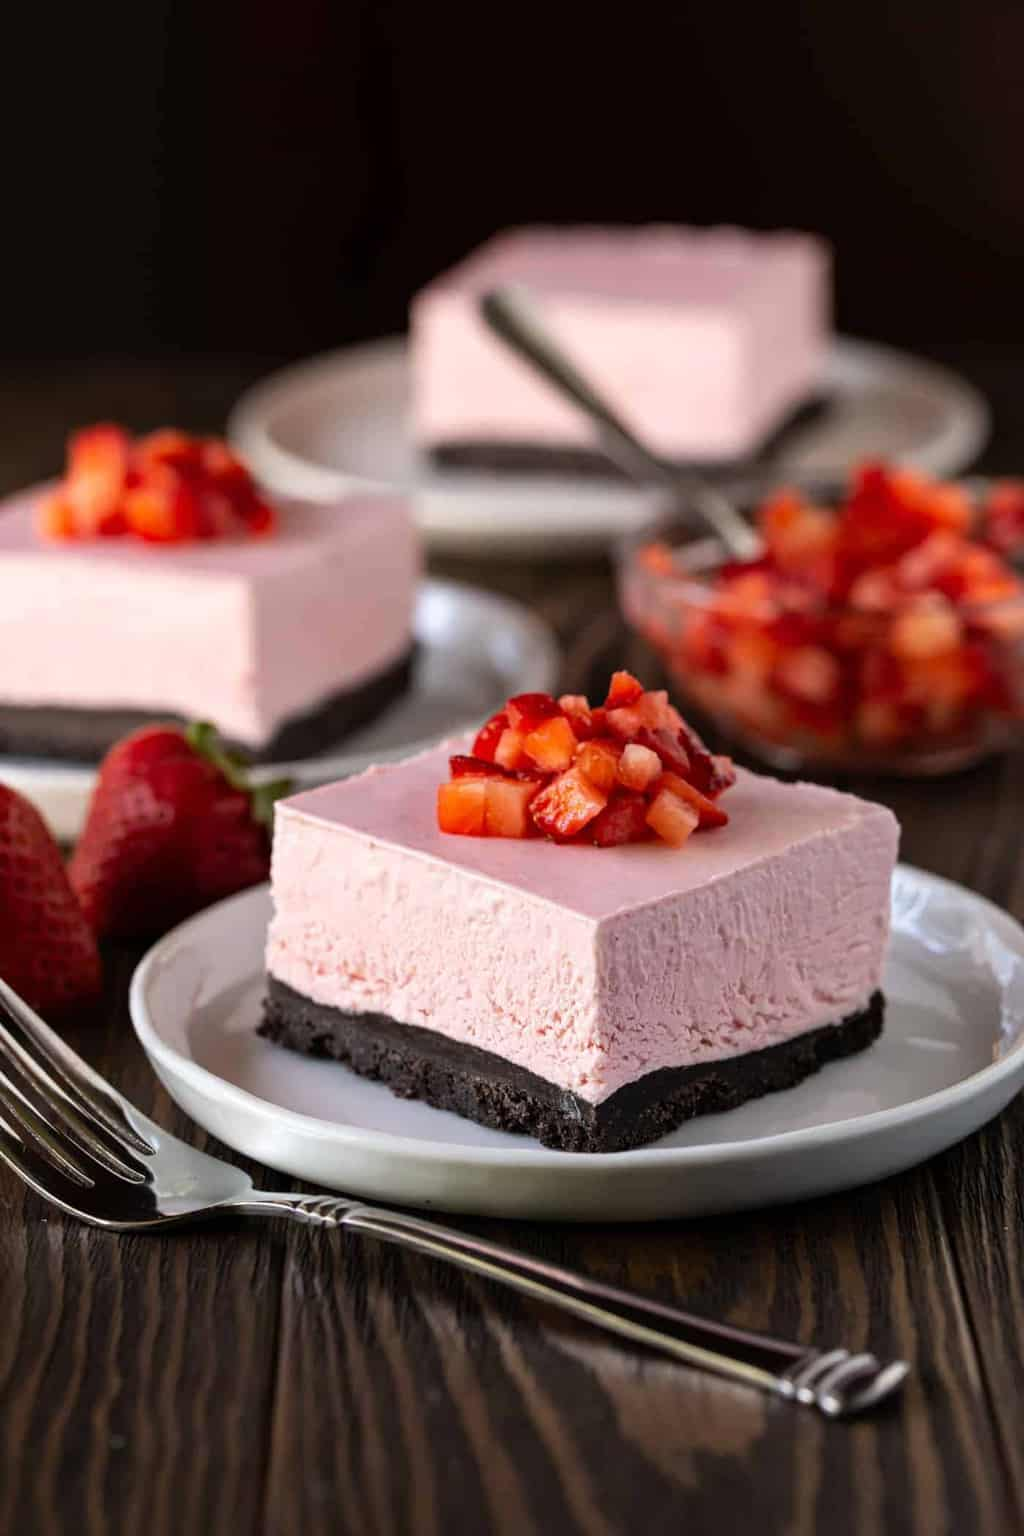 Cut No Bake Strawberry Cheesecake Bar on a gray plate with chopped strawberries on top.